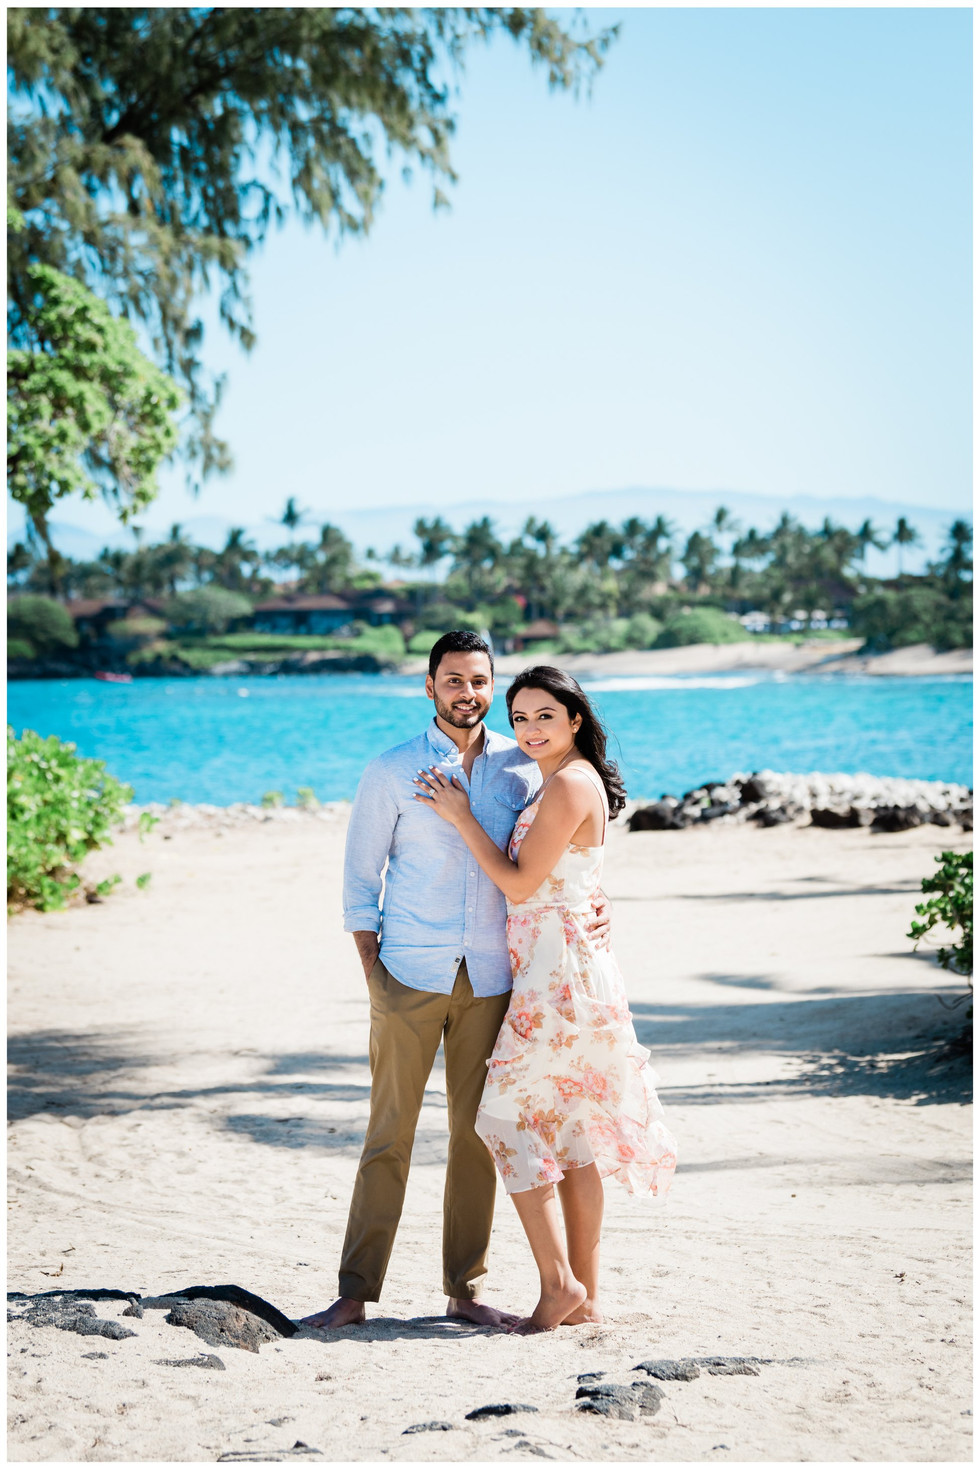 Hawaii Maternity Photographers 5.jpg